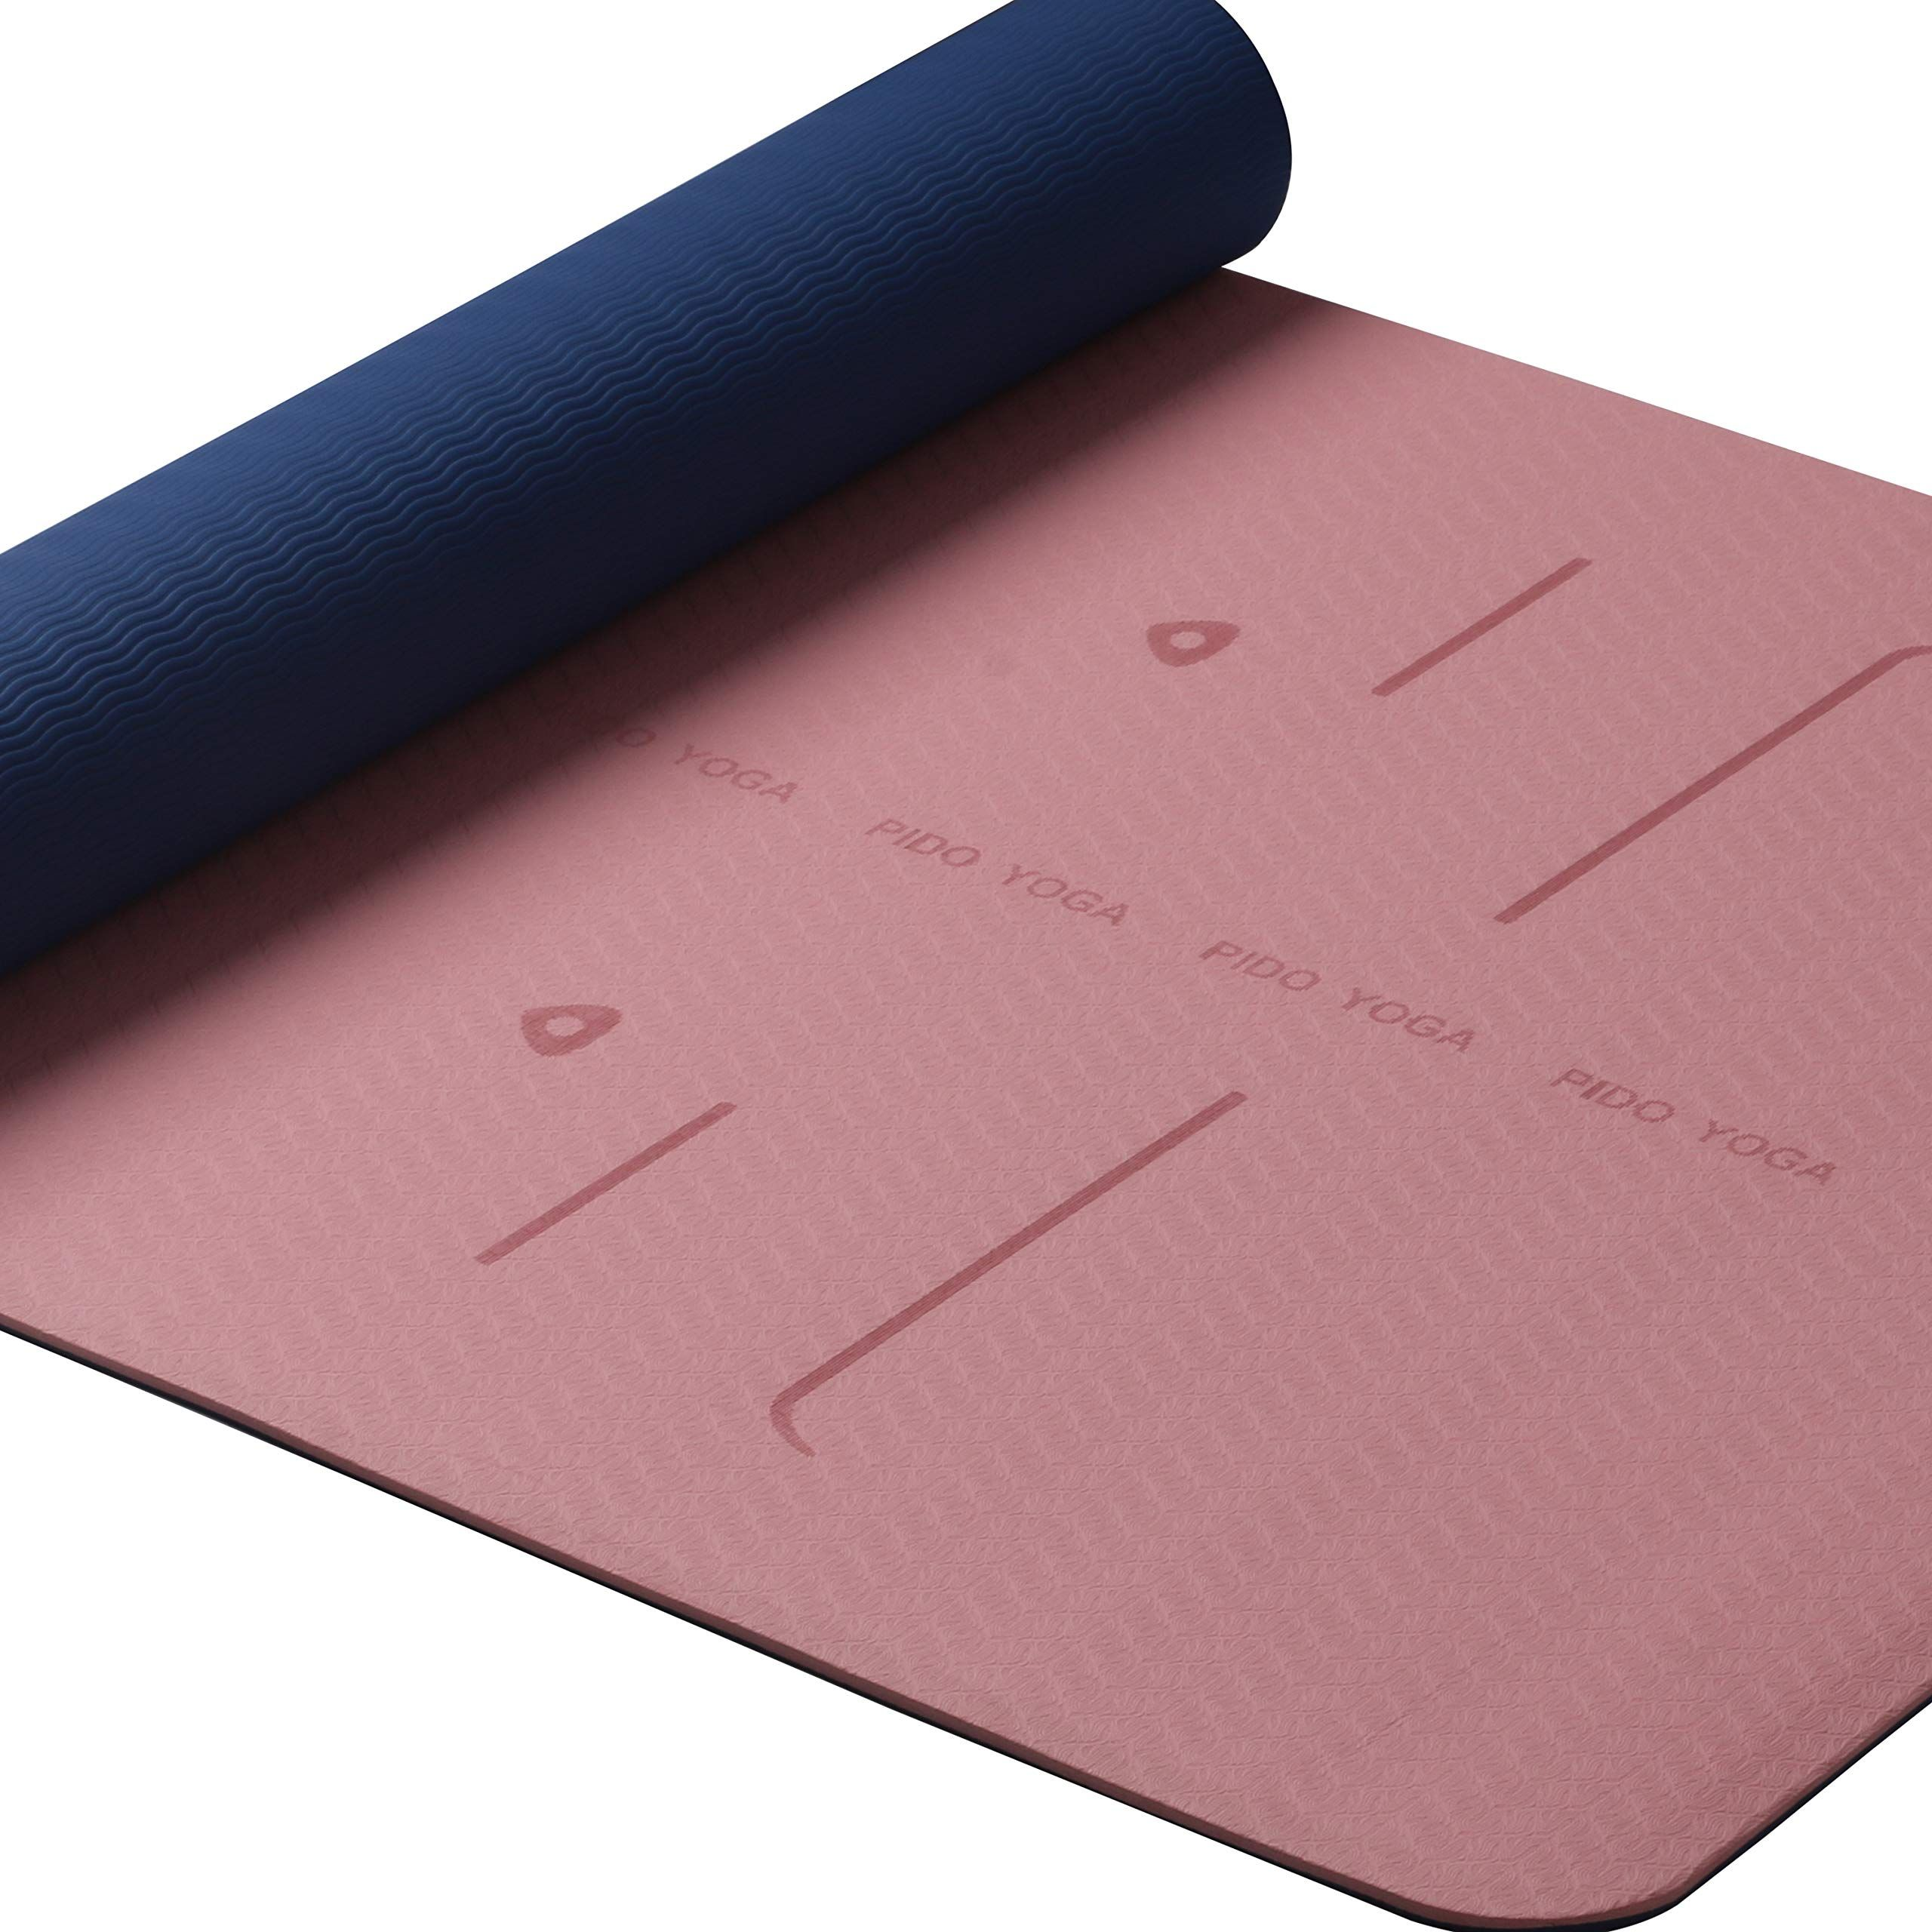 Wwww Pido Yoga Mat Sgs Certified Tpe Eco Friendly Sticky Non Slip Exercise Mat With Body Alignment System With Carrying S Yoga Pilates Yoga Mat Pilates Workout